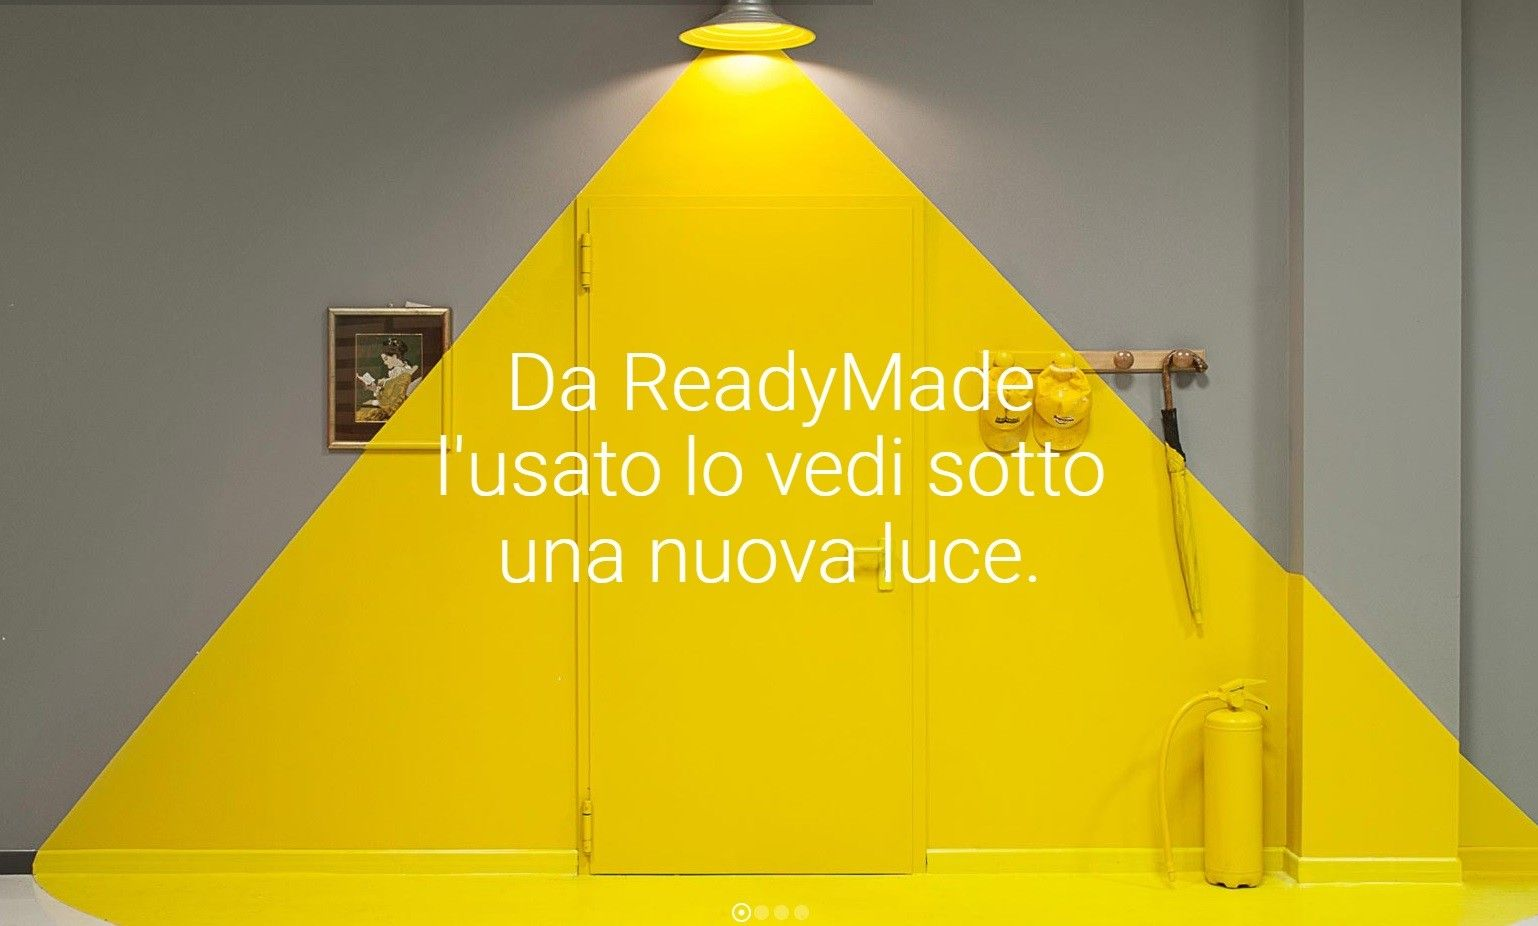 ReadyMadeShop.it